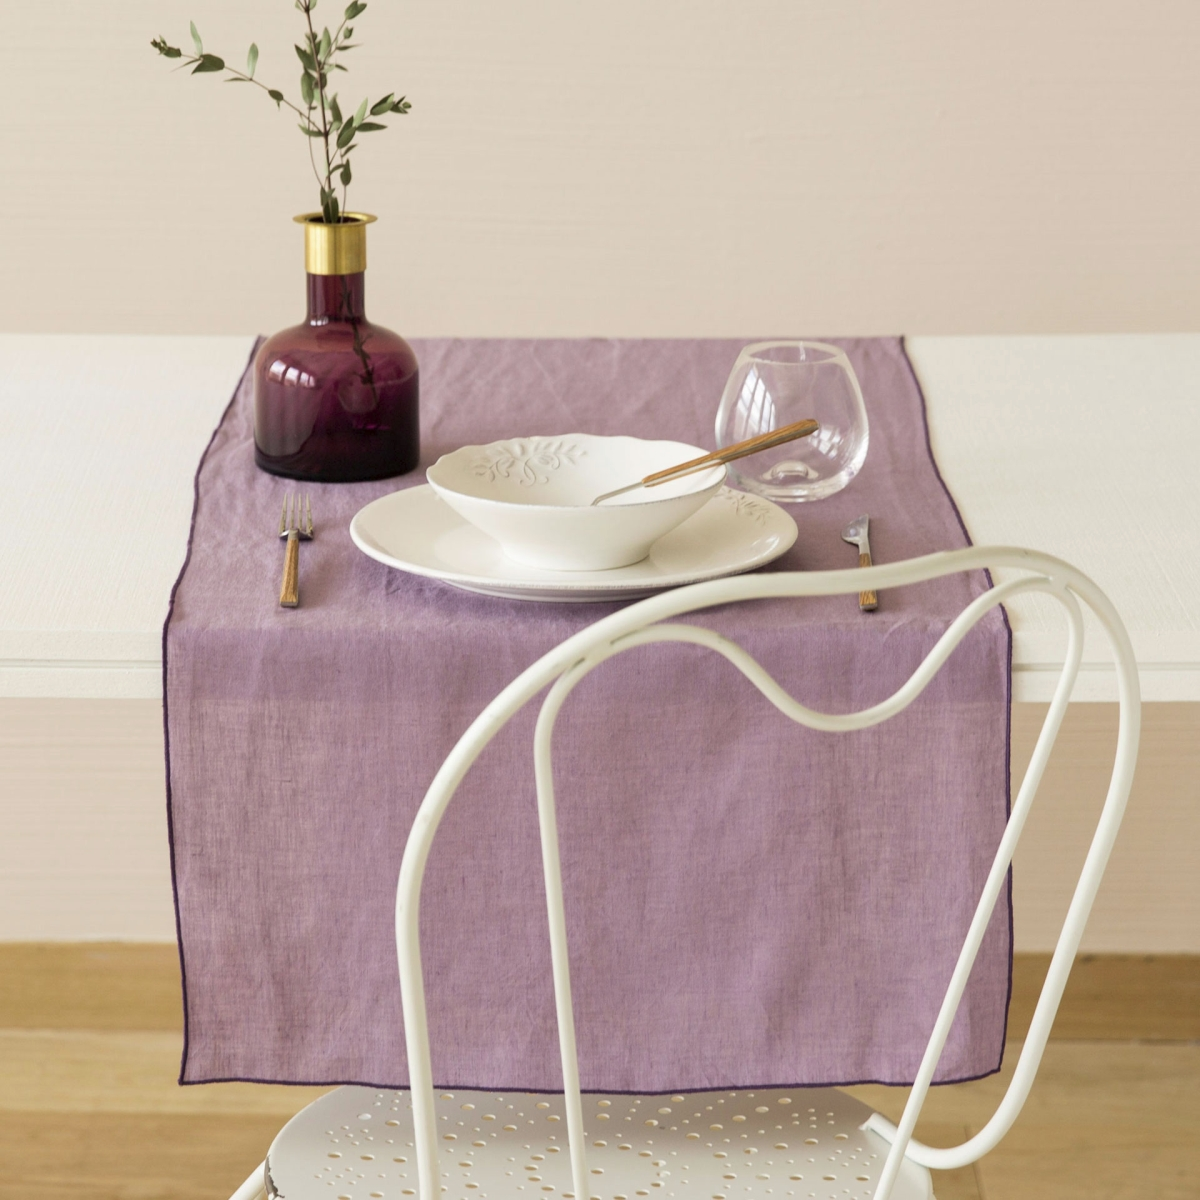 Linen table runner from Zara Home